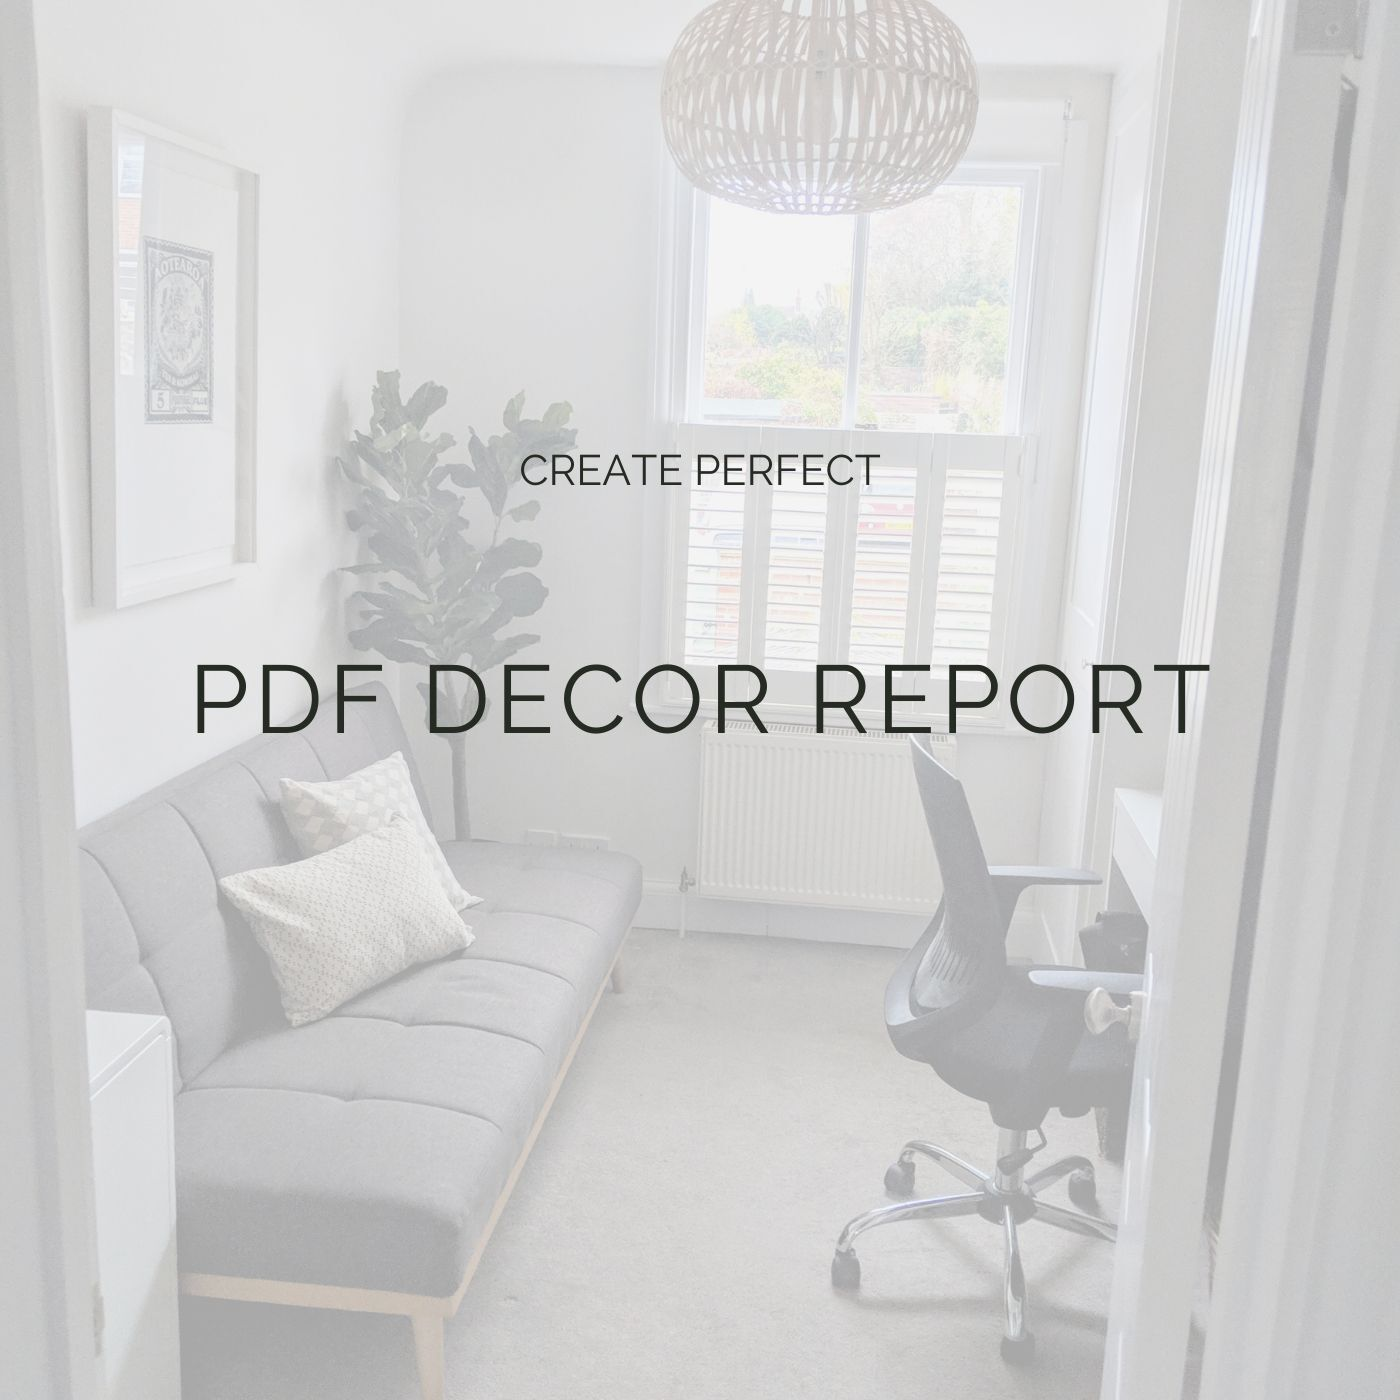 PDF Decor Report.jpg